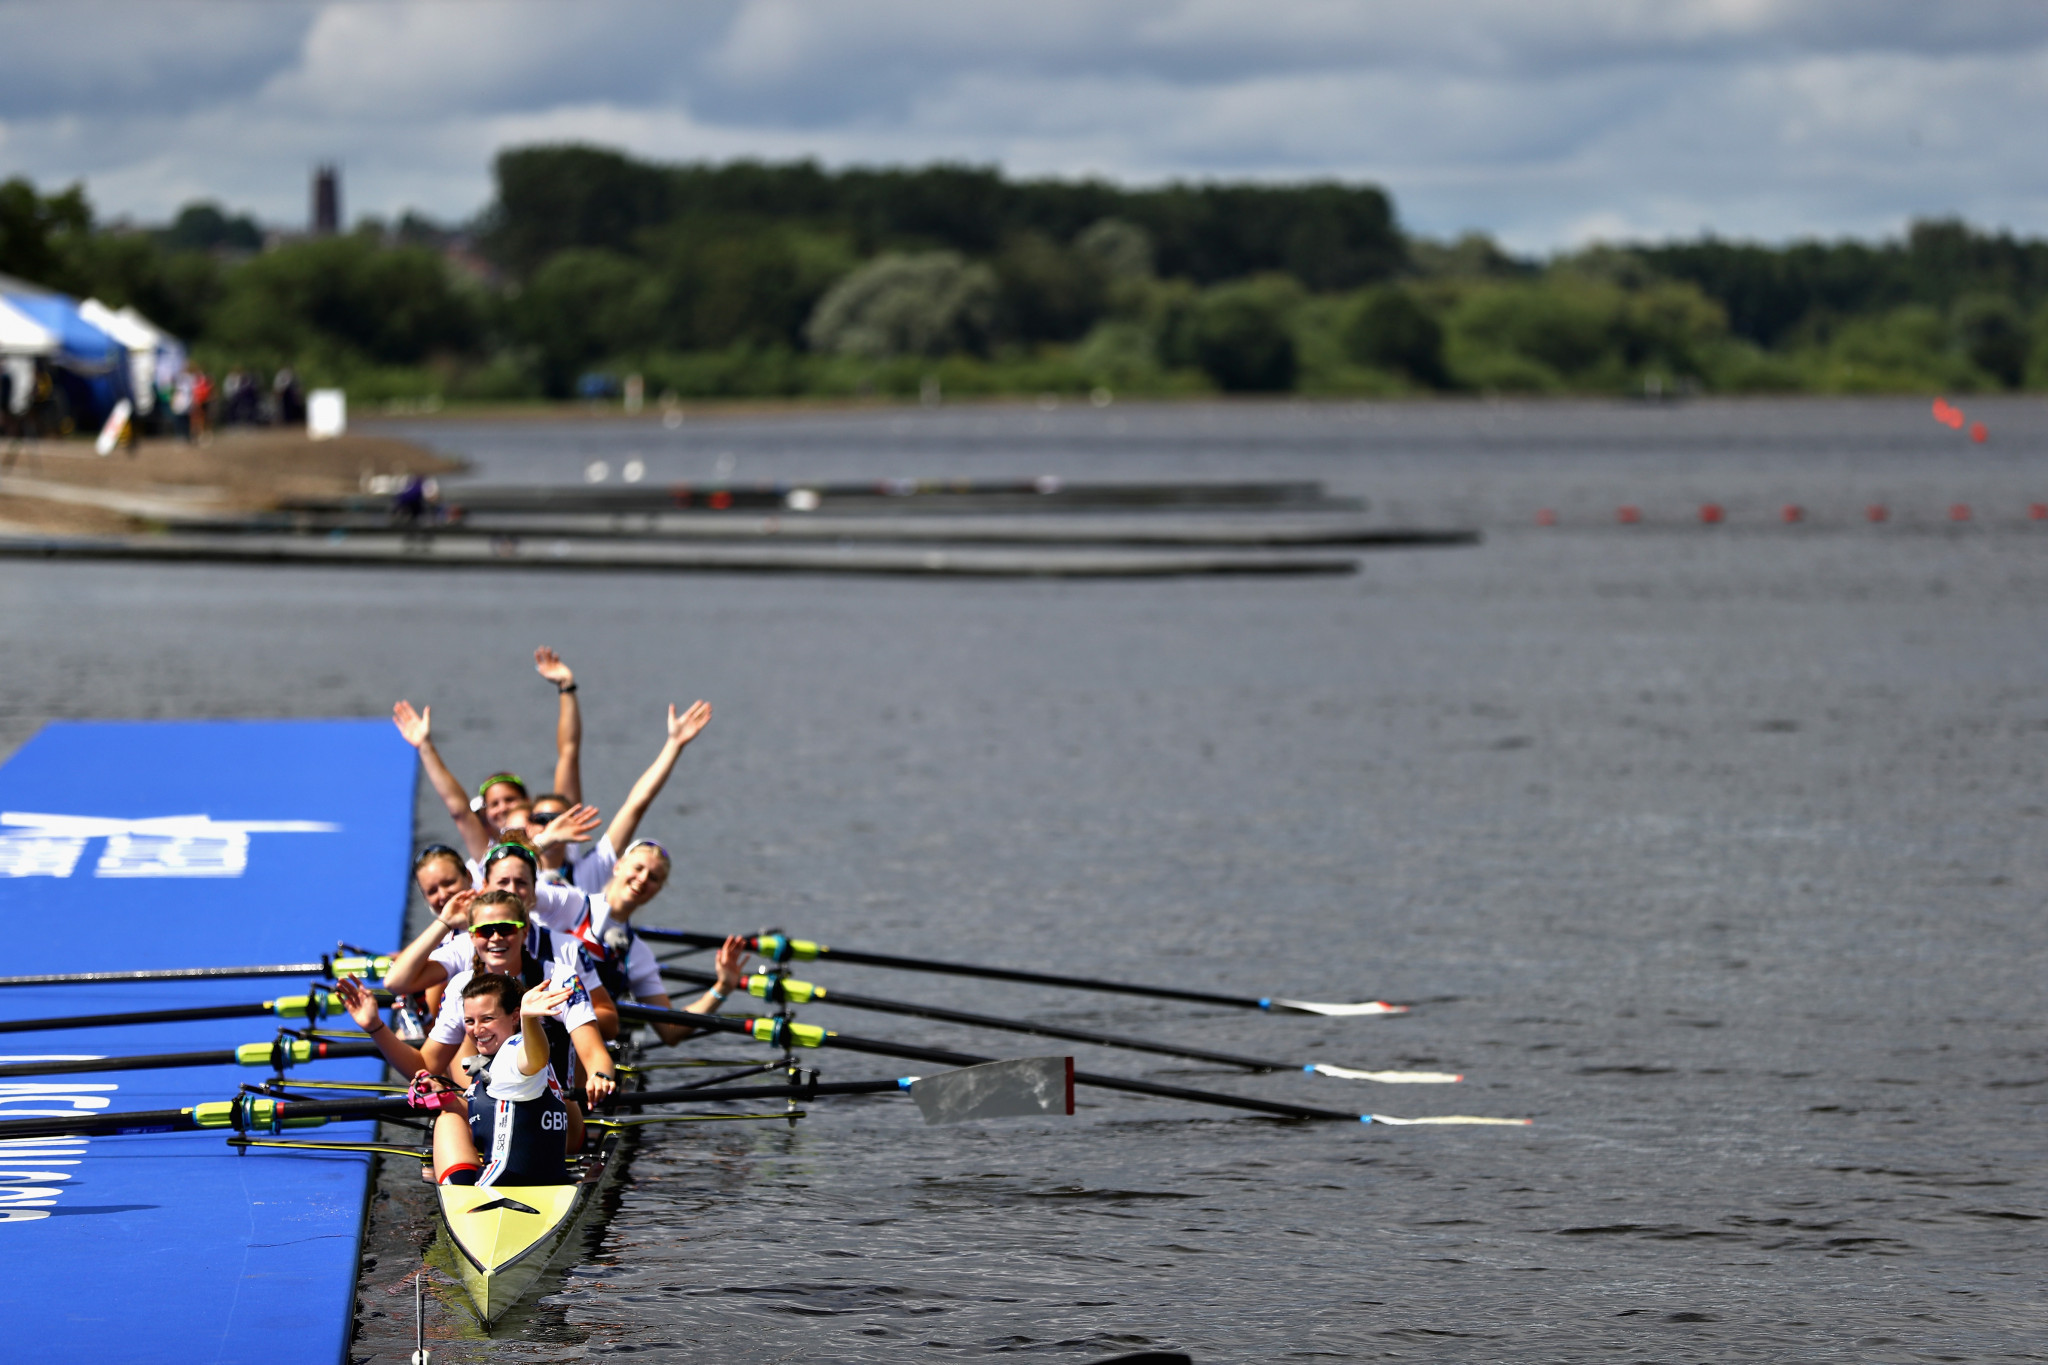 The first nine rowing gold medals were claimed as finals began ©Getty Images